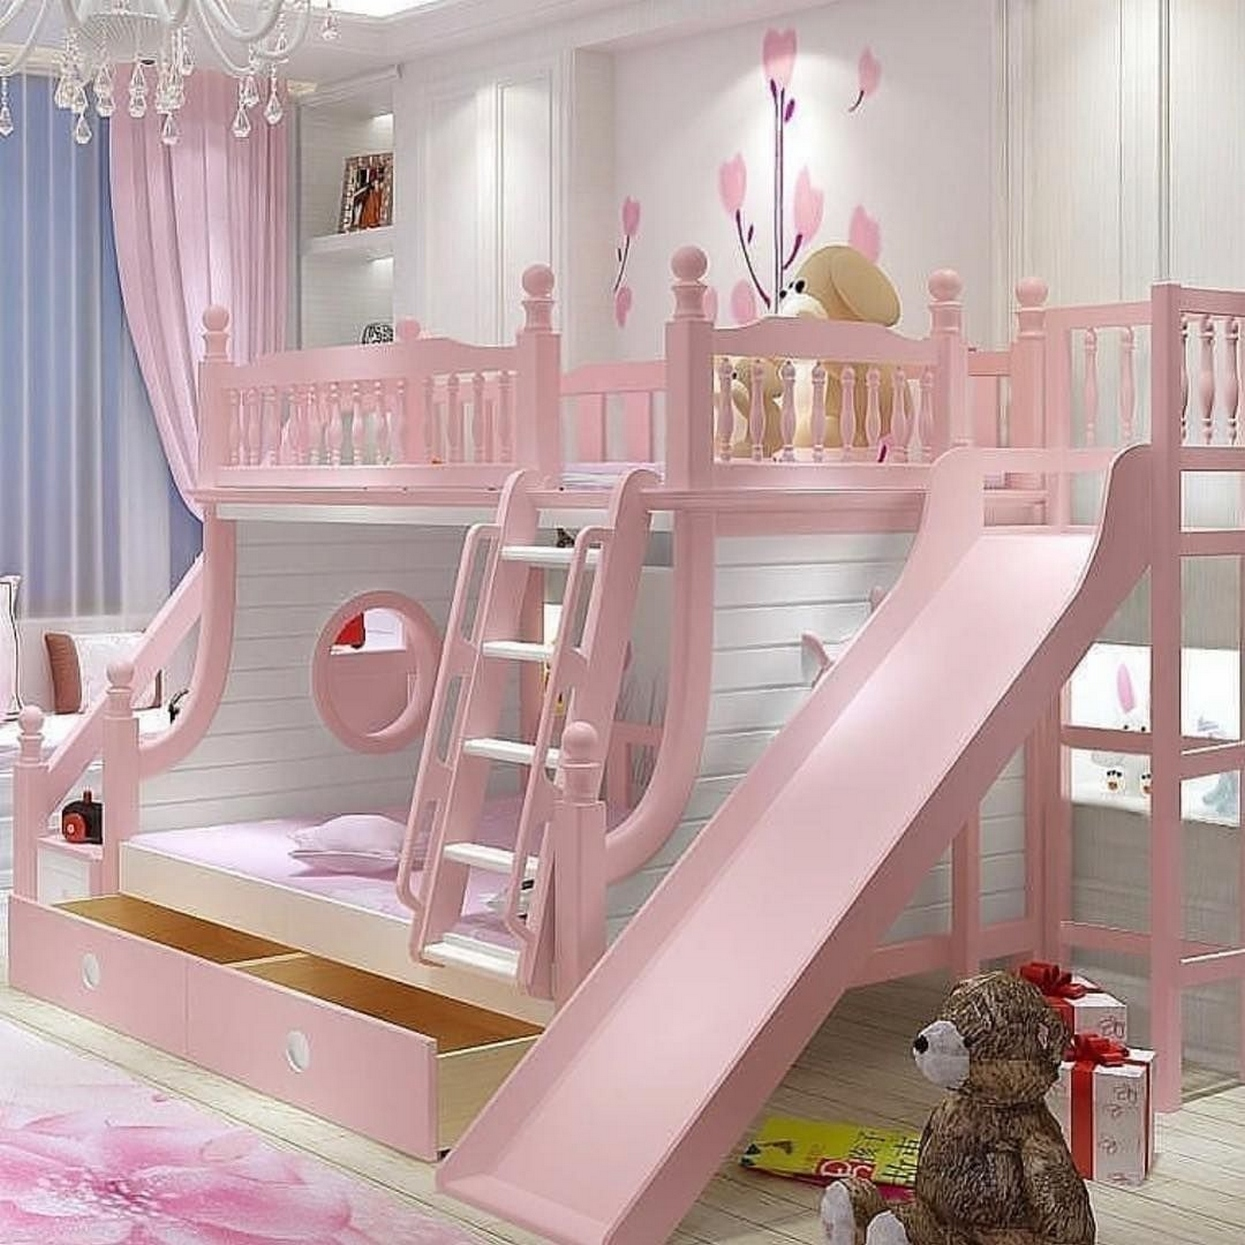 31 Top Choices Bunk Beds For Kids Design Ideas Tips For Choosing It 5